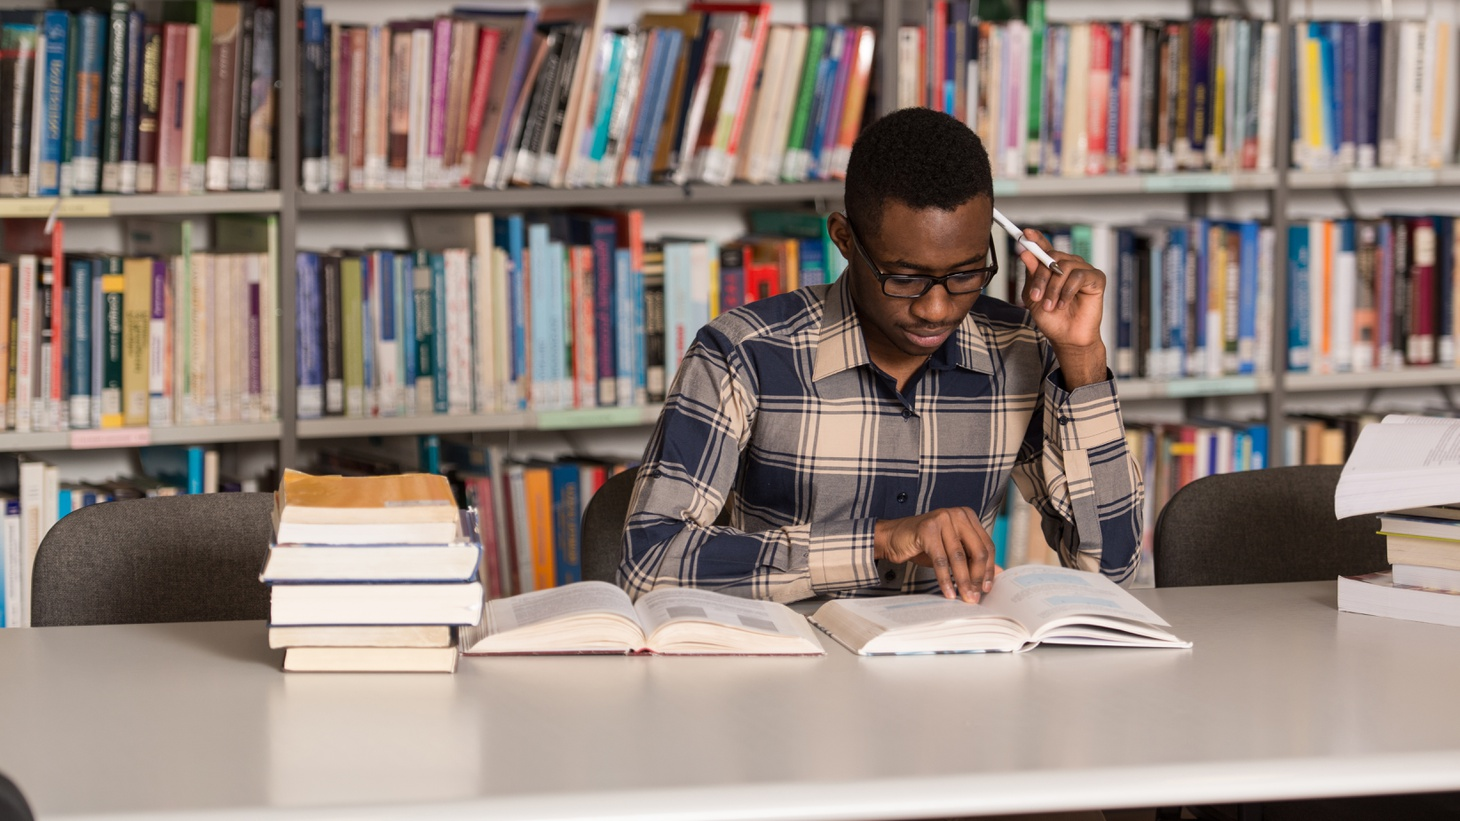 In the last school year, men made up about 40% of college students, and if the education gap keeps widening, two women will earn a college degree for every one man, according to estimates from the National Student Clearinghouse, a research nonprofit.